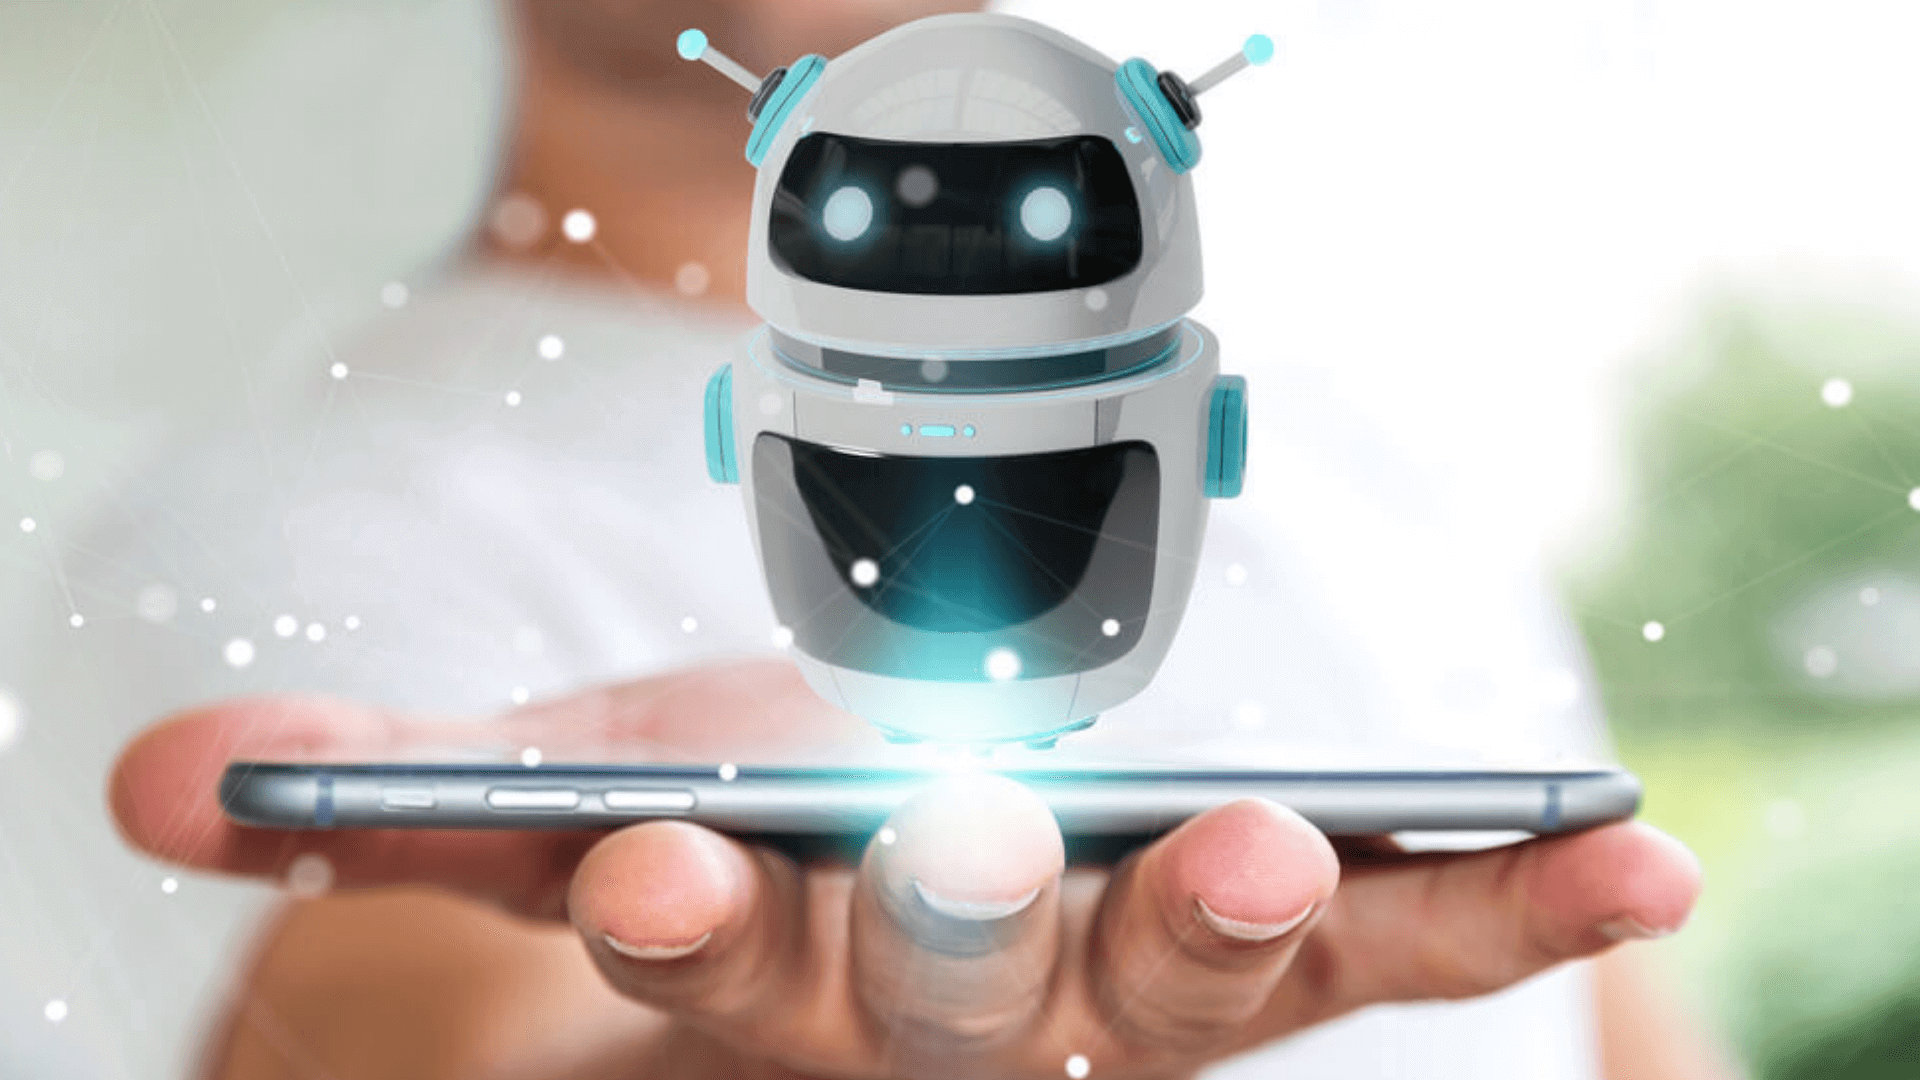 How To Build Your Own Chatbot Using Deep Learning